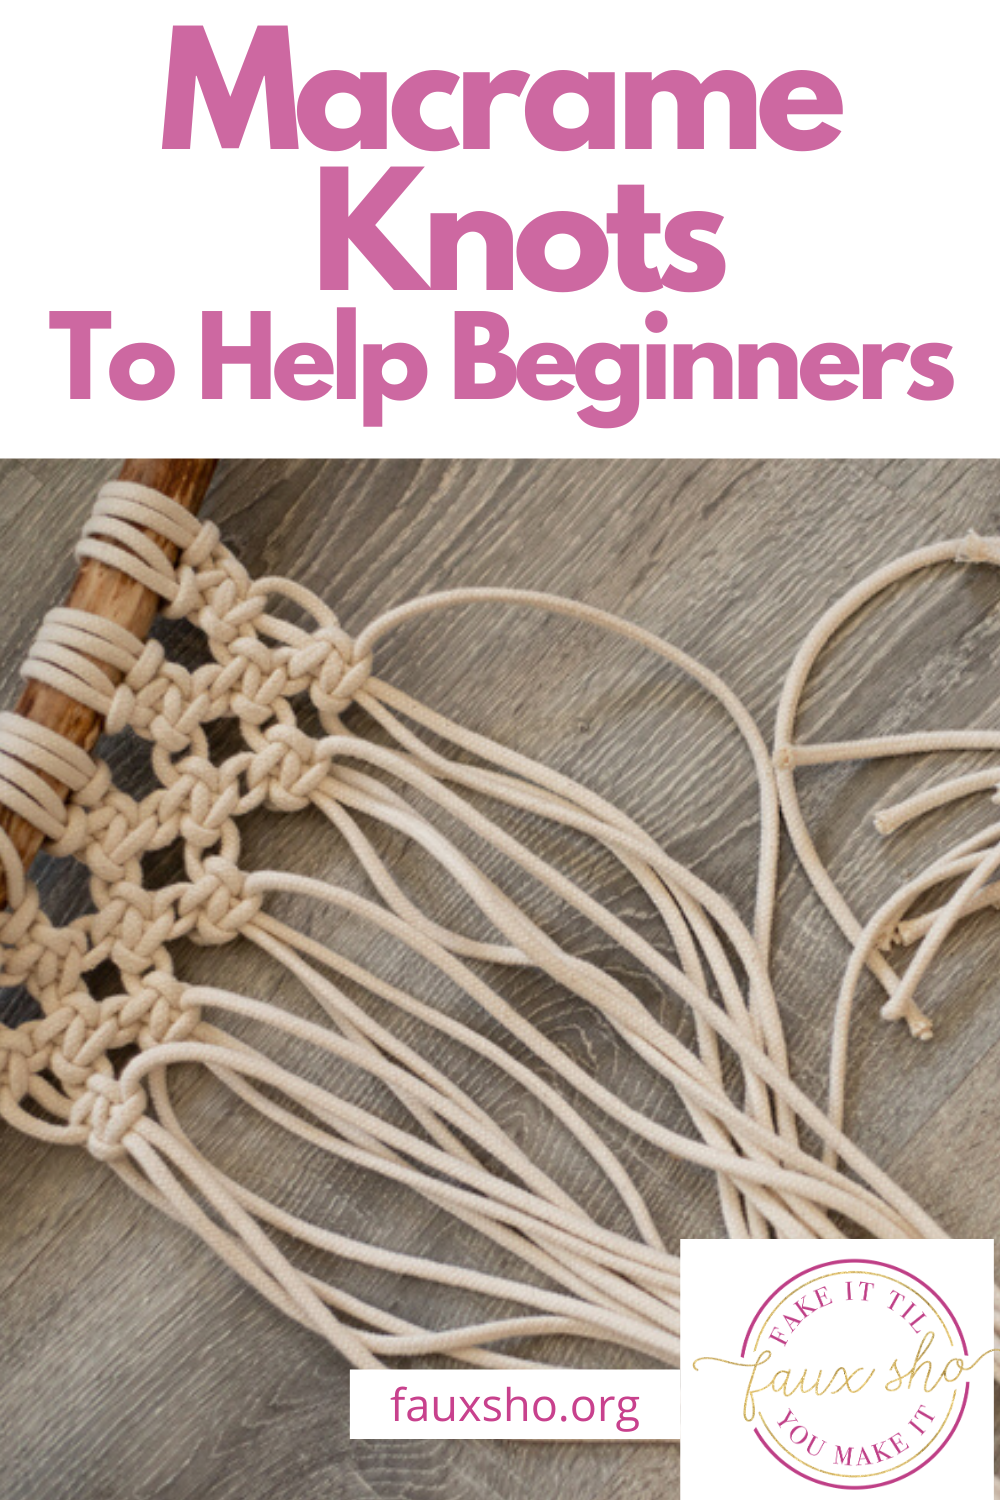 I've long admired macrame. I think macrame wall hangings are so beautiful. I decided I would give it a try. While that was a while ago, I thought I would share these knot styles with you to get you started. They are easy and you can start making something today. #howtotiemacrameknots #macrameknotsforbeginners #howtomakemacrame